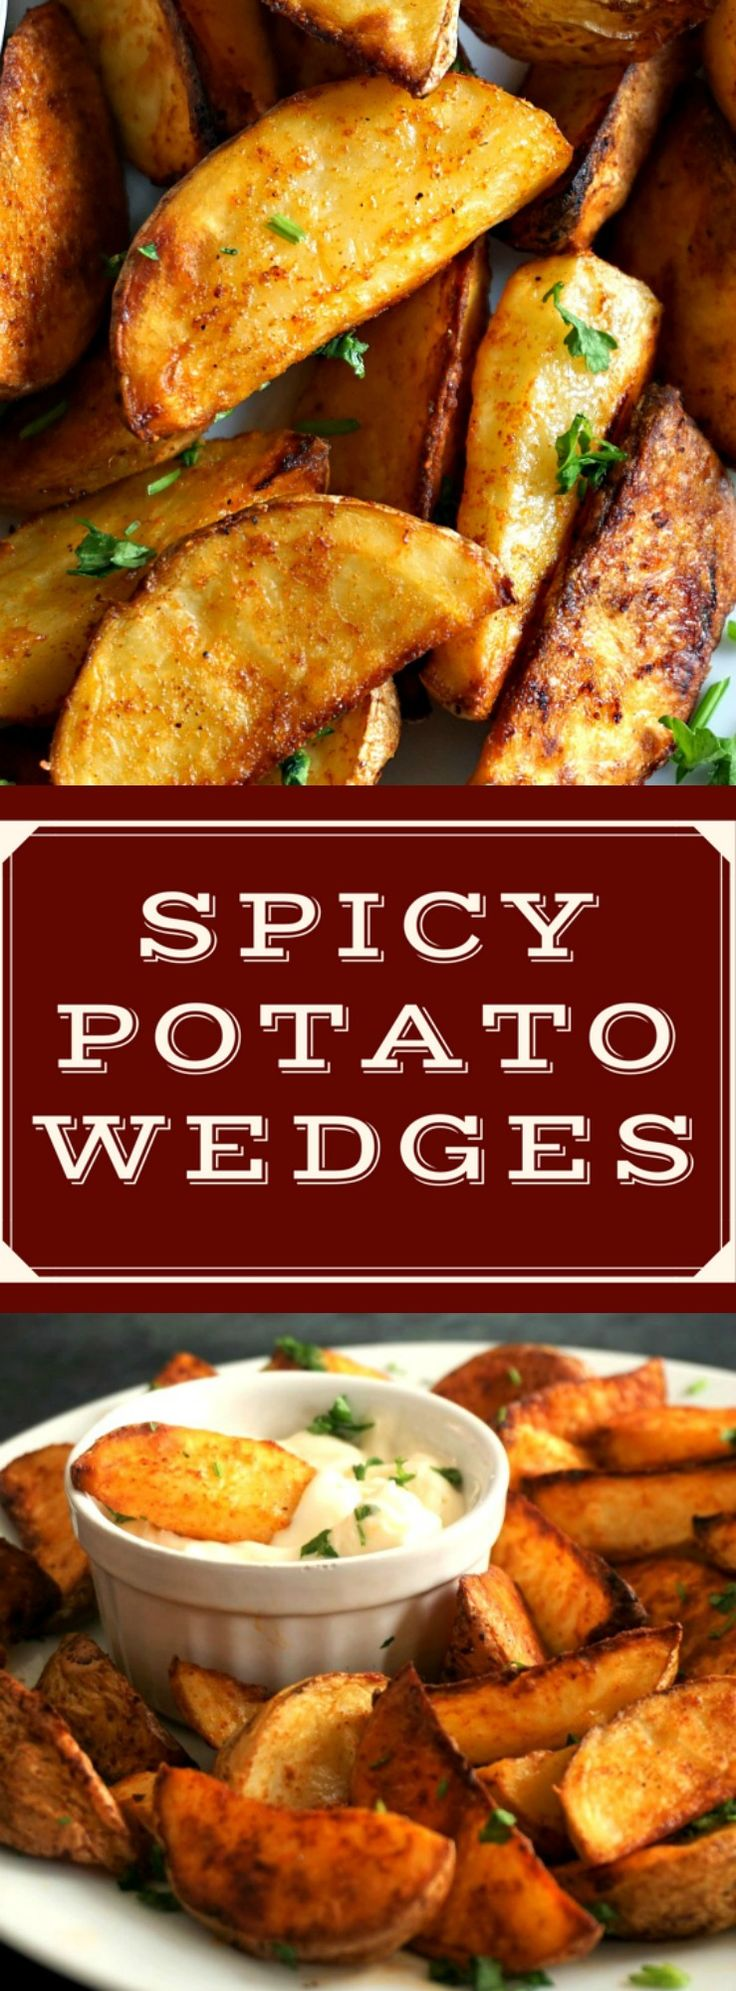 Homemade spicy potato wedges, the best side dish that goes wonderfully well with any roast, burgers, meat sandwiches or wraps, or just on their own.  Serve them with your choice of sauce, and you are in for a treat. No need to order a take-away,  have your own feast at home, they are just amazing. Great choice for the Game Day, or just a nice meal.